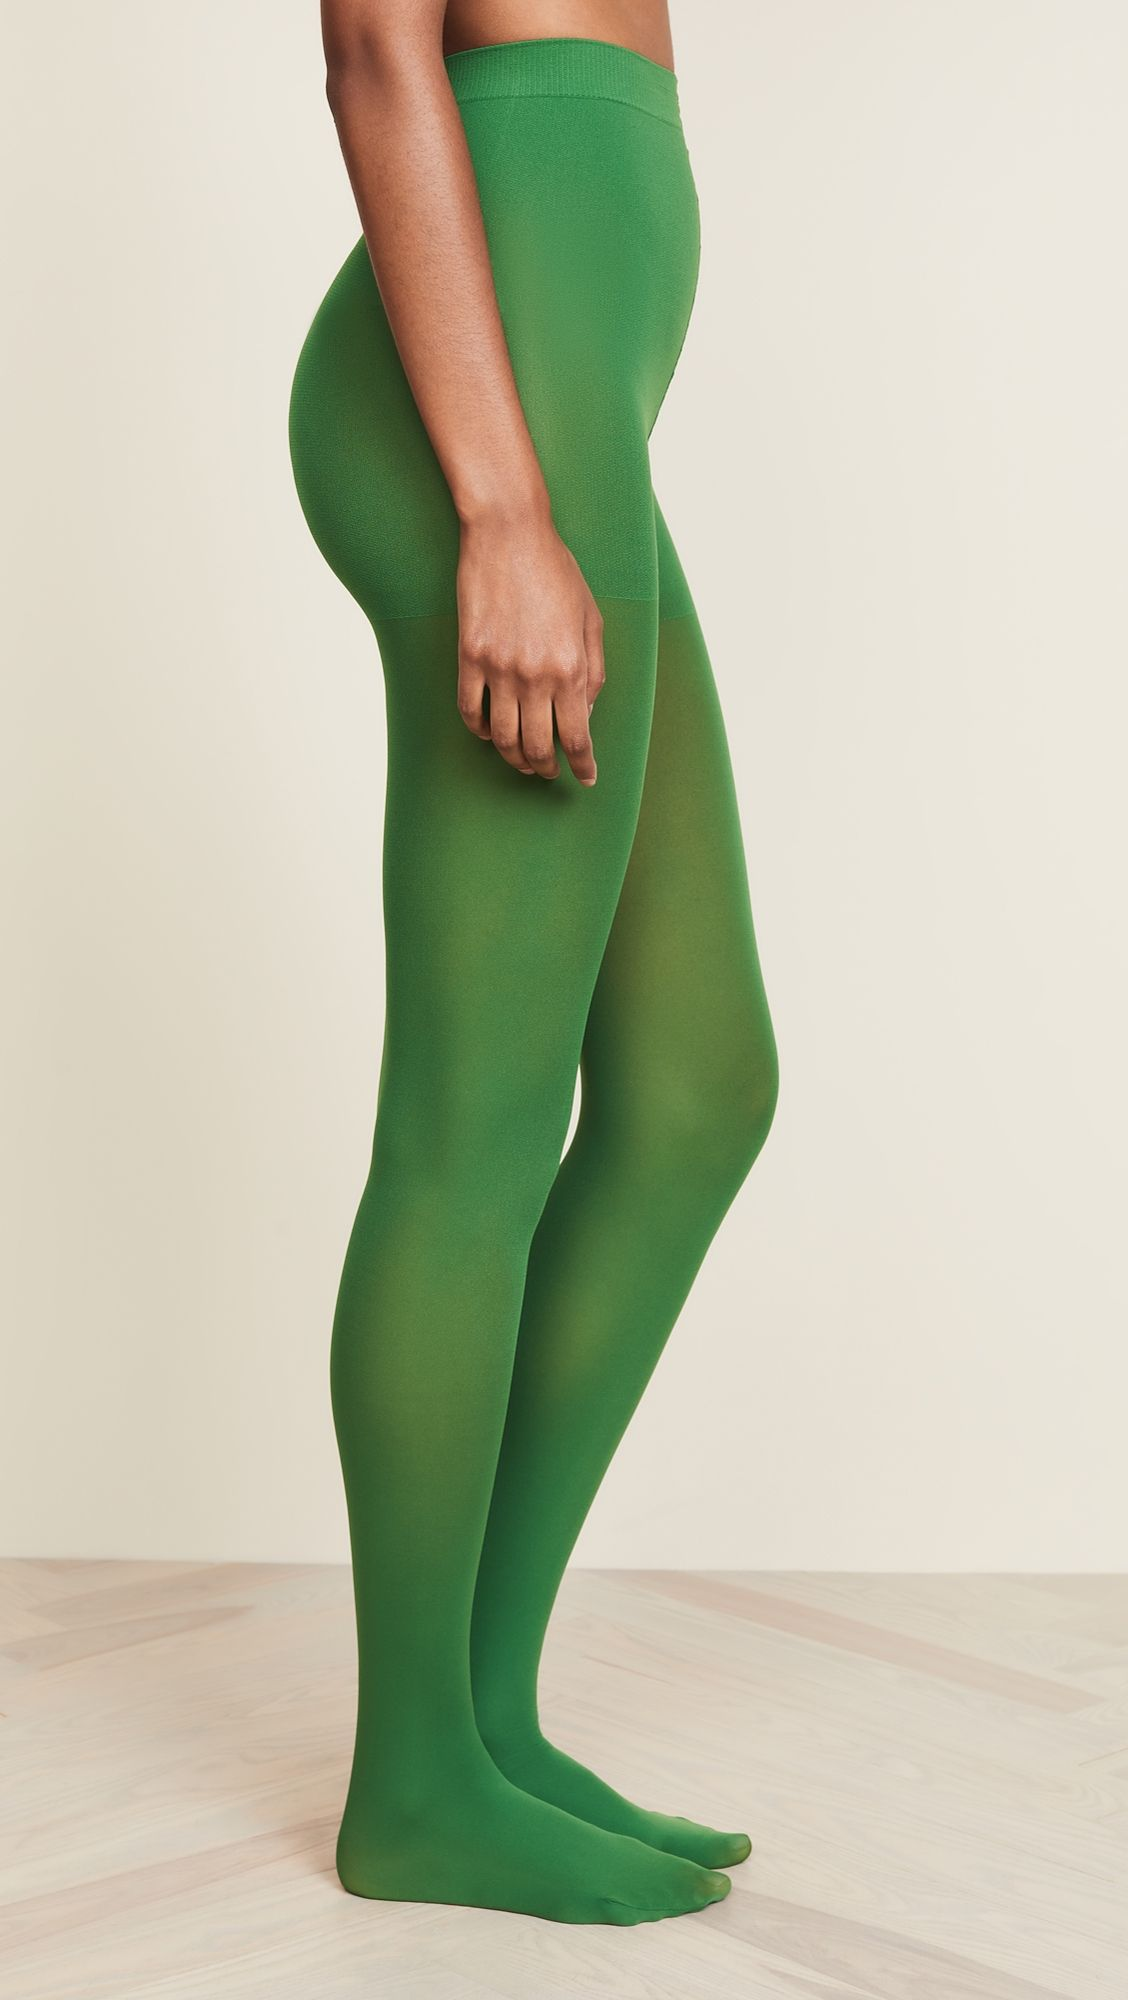 a3aab089658 Emilio Cavallini Matte Solid Tights Green Tights